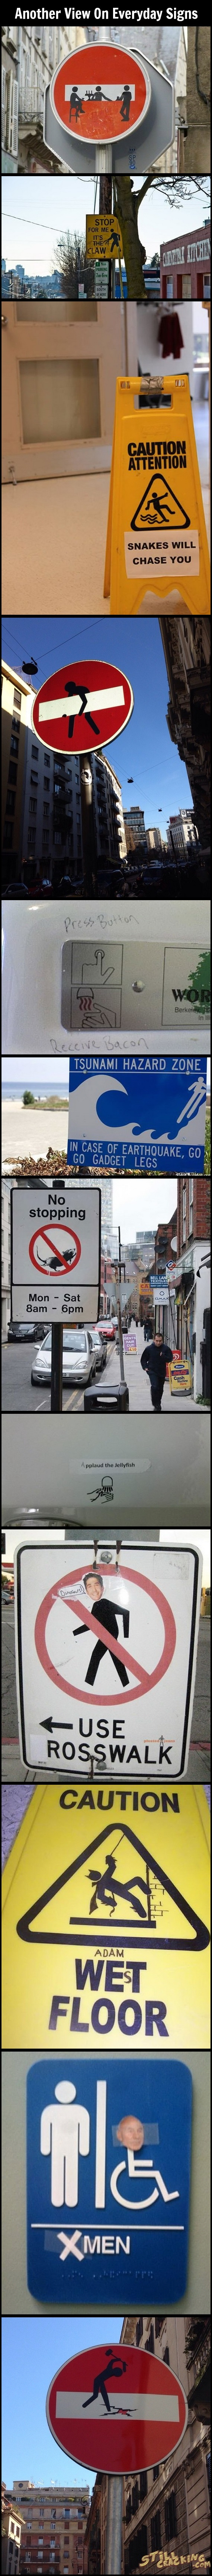 funny pics, funny signs, creative signs